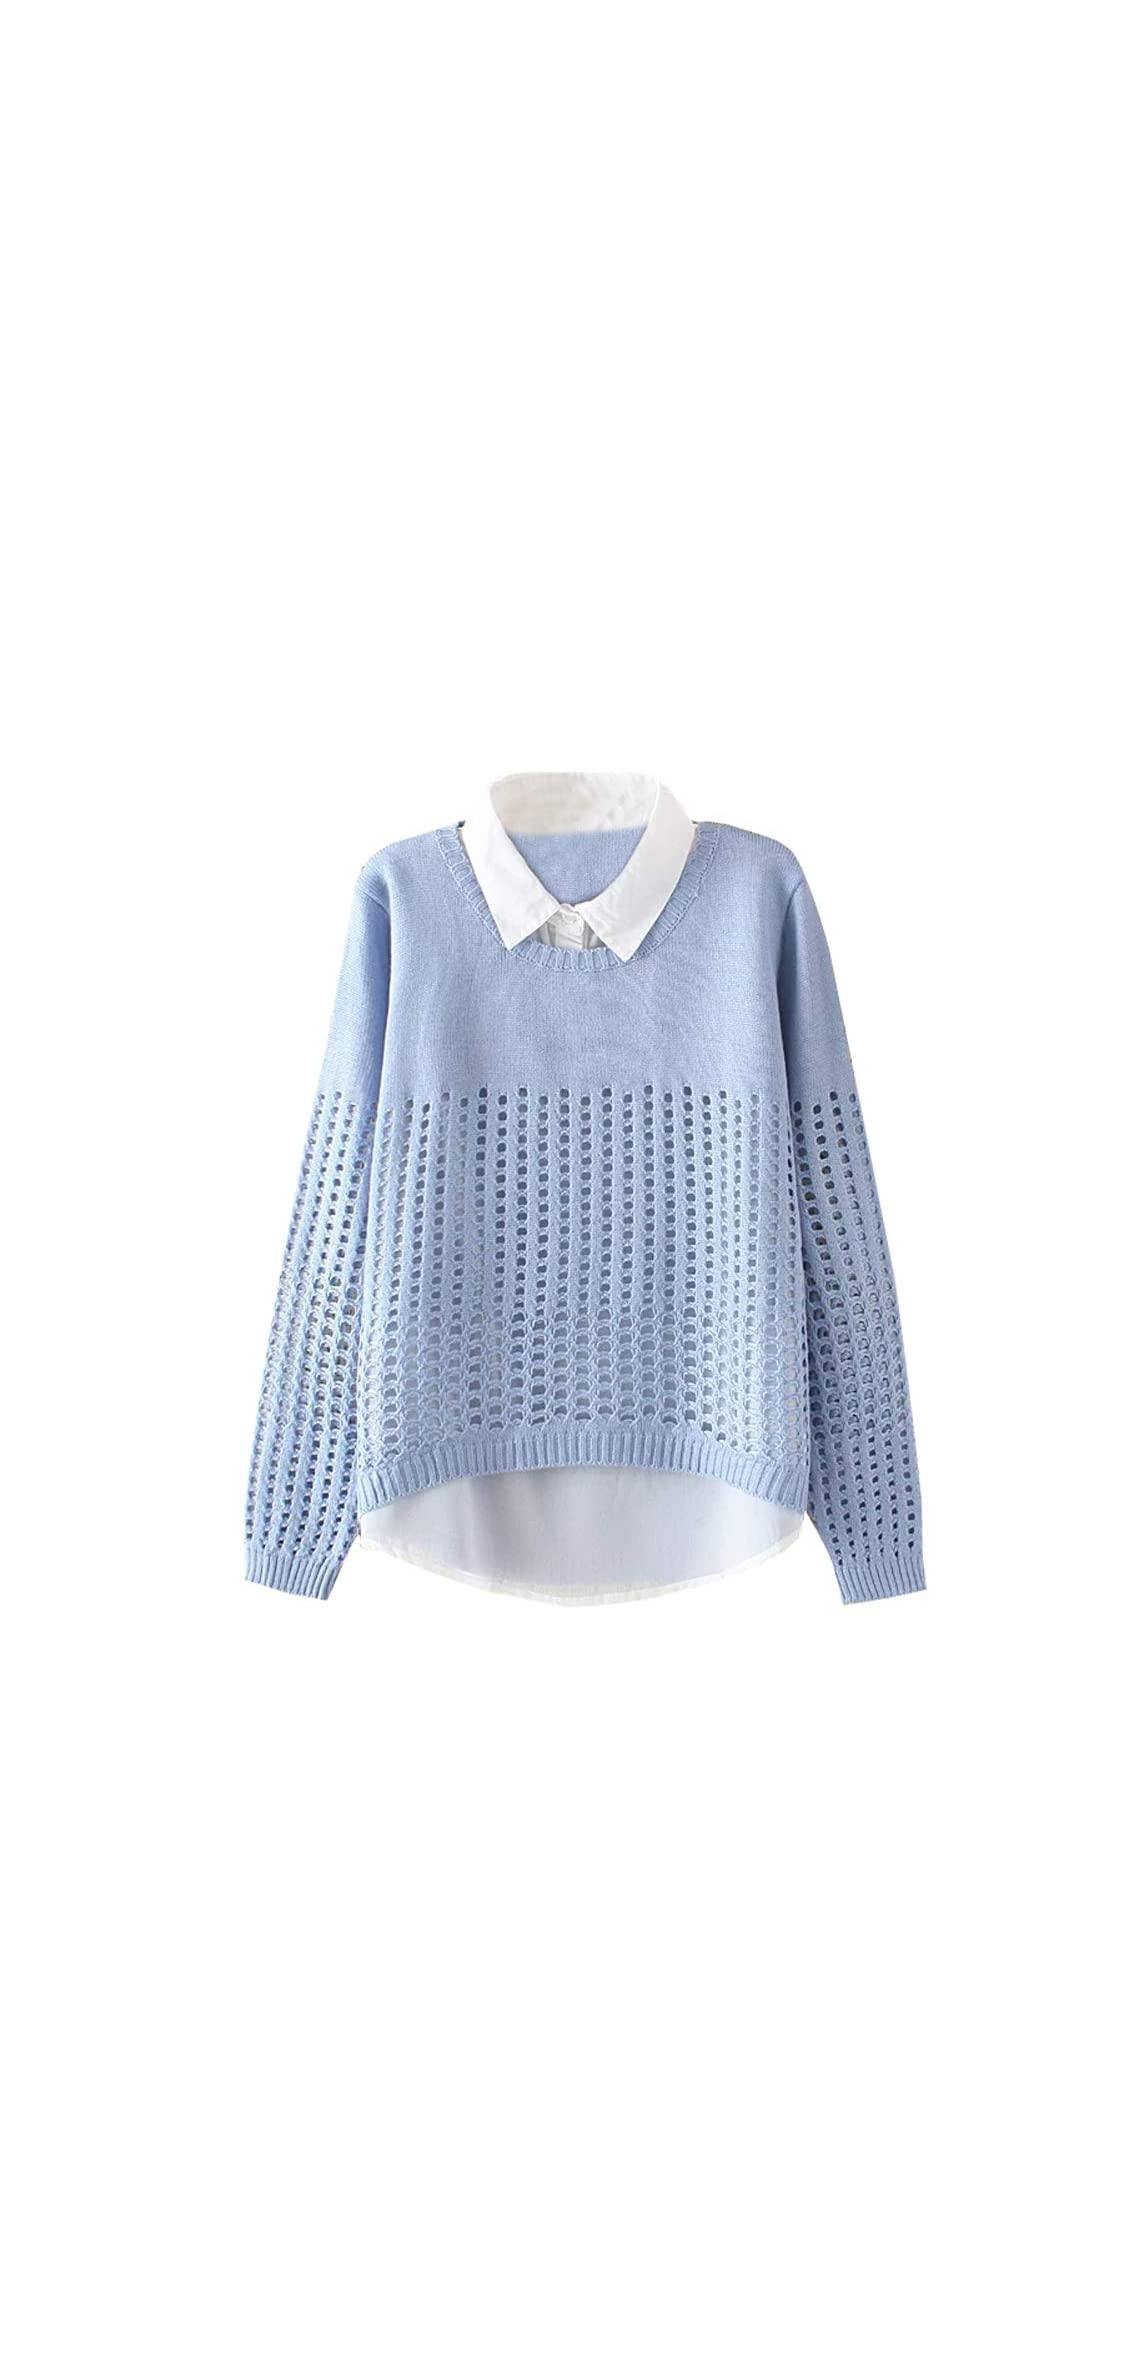 Women's Pan Collar Knitted Sweater Casual Pullover